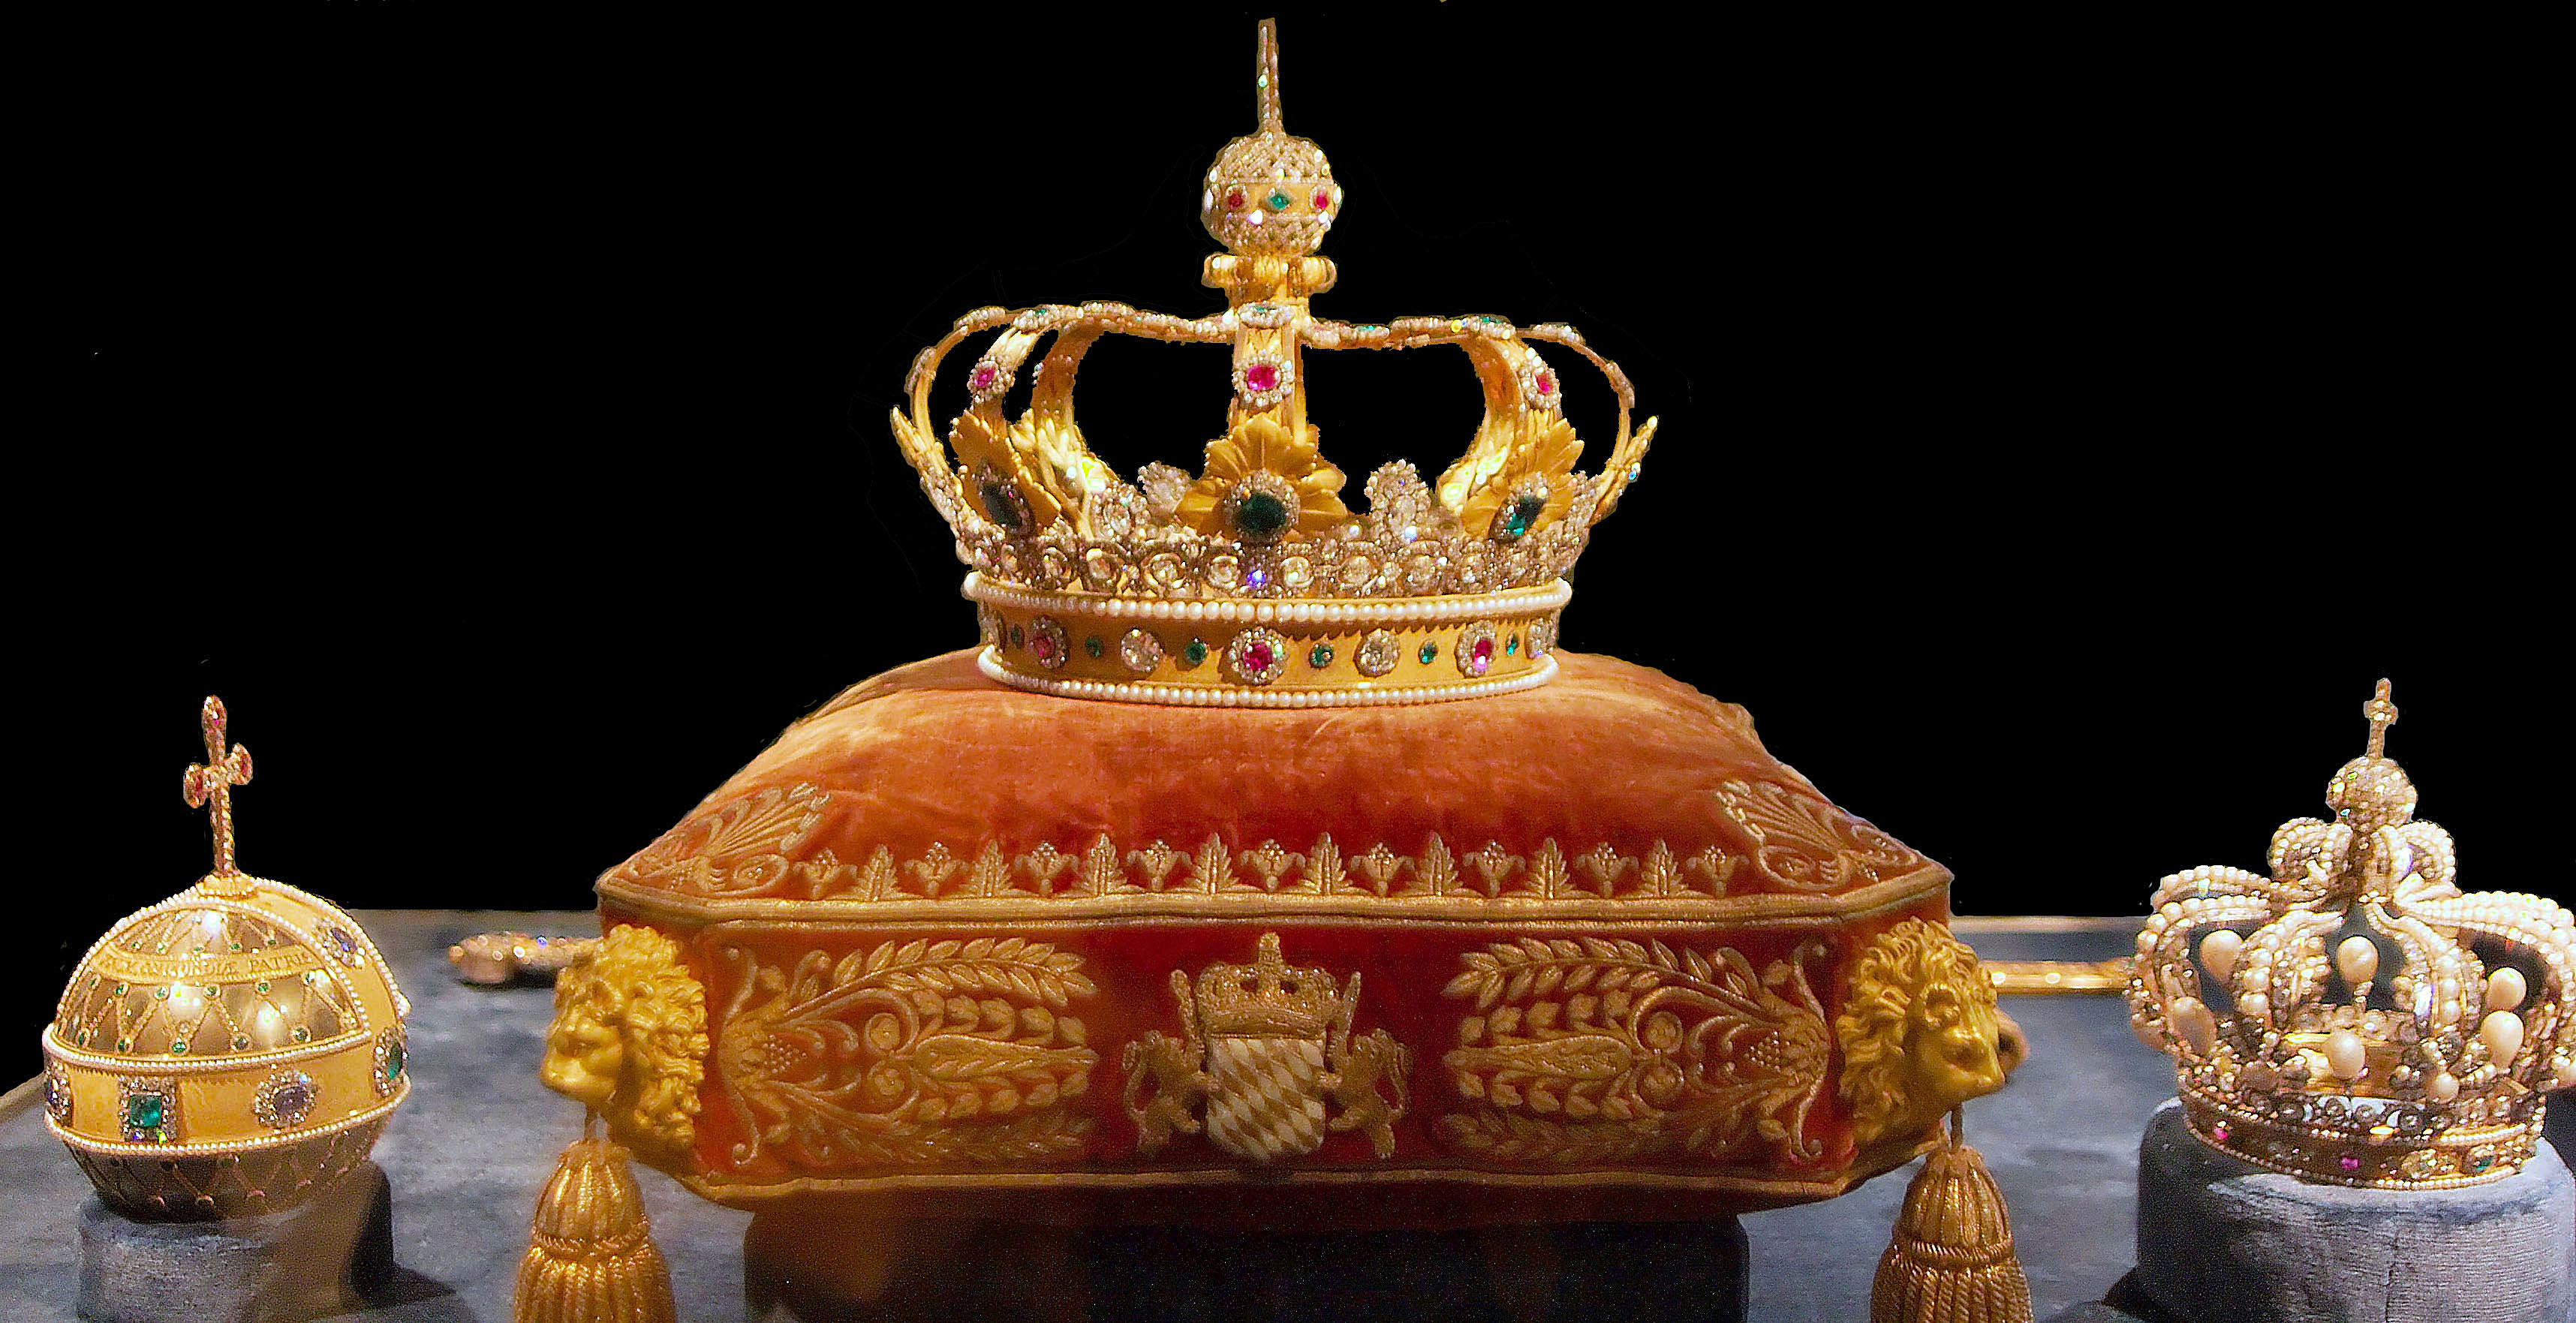 India Crown Jewel Crown Jewels of Bavaria